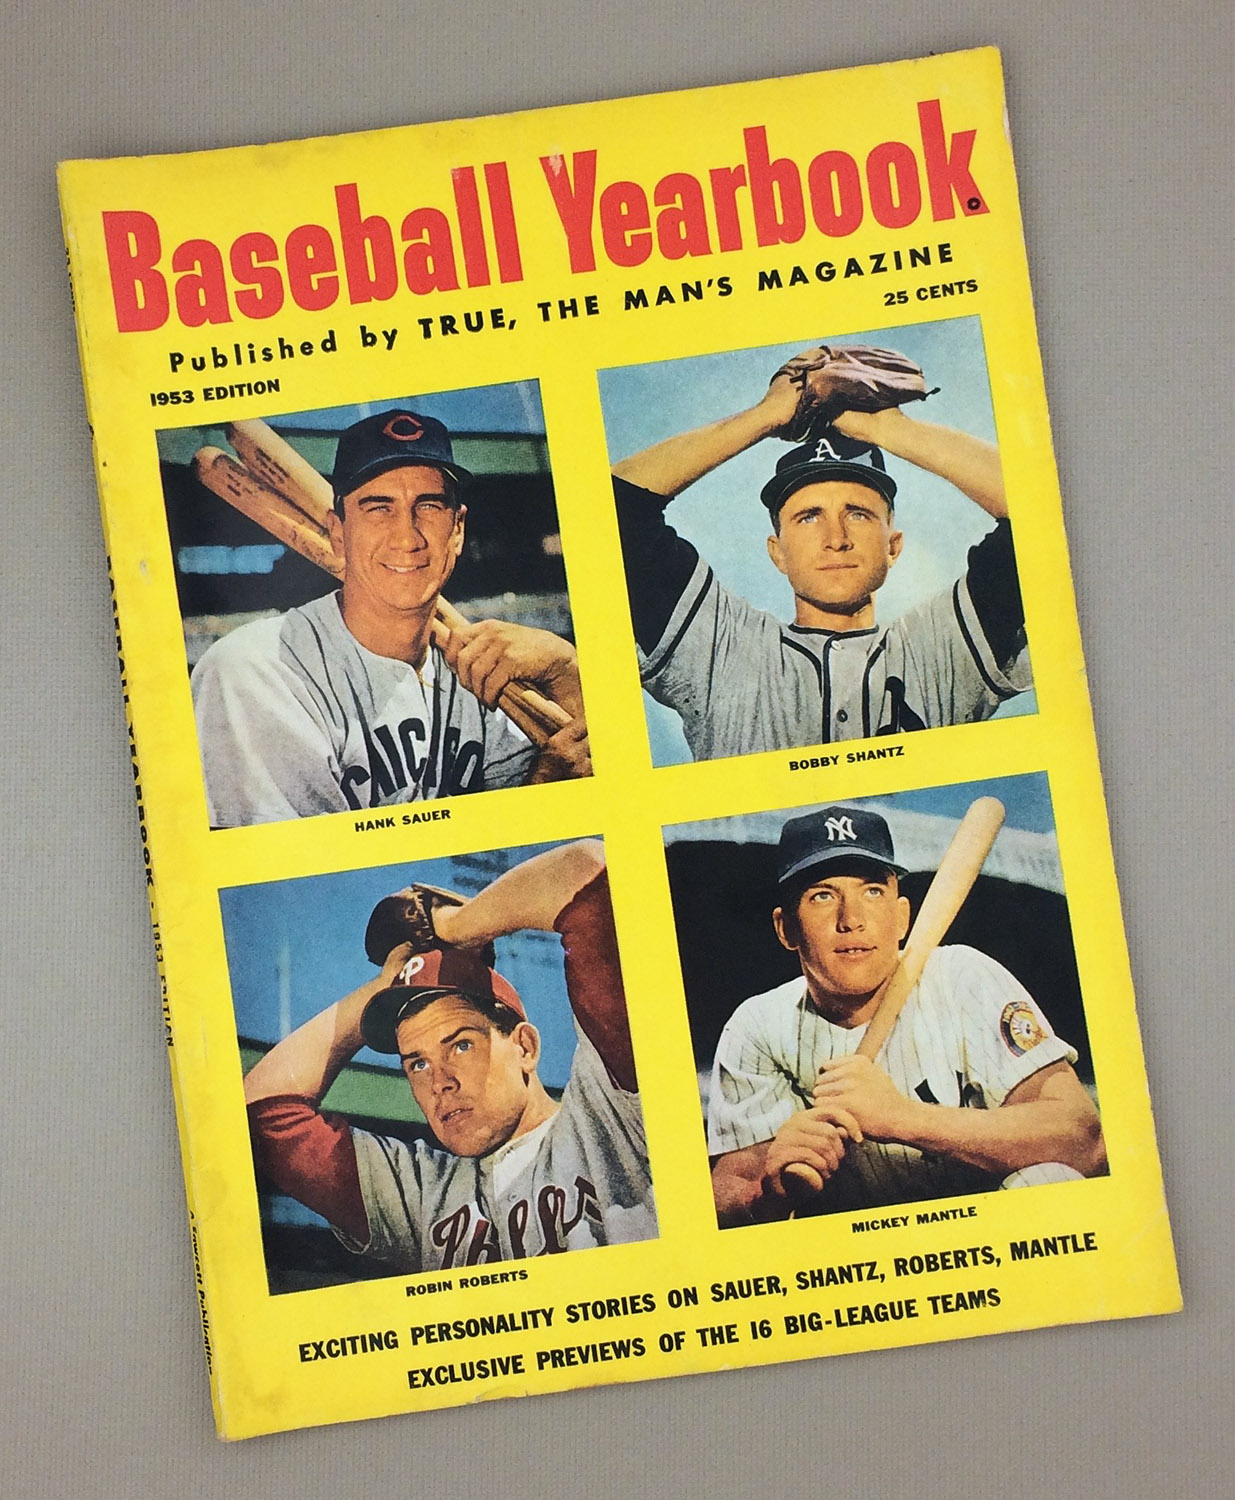 1953 Baseball Yearbook Magazine